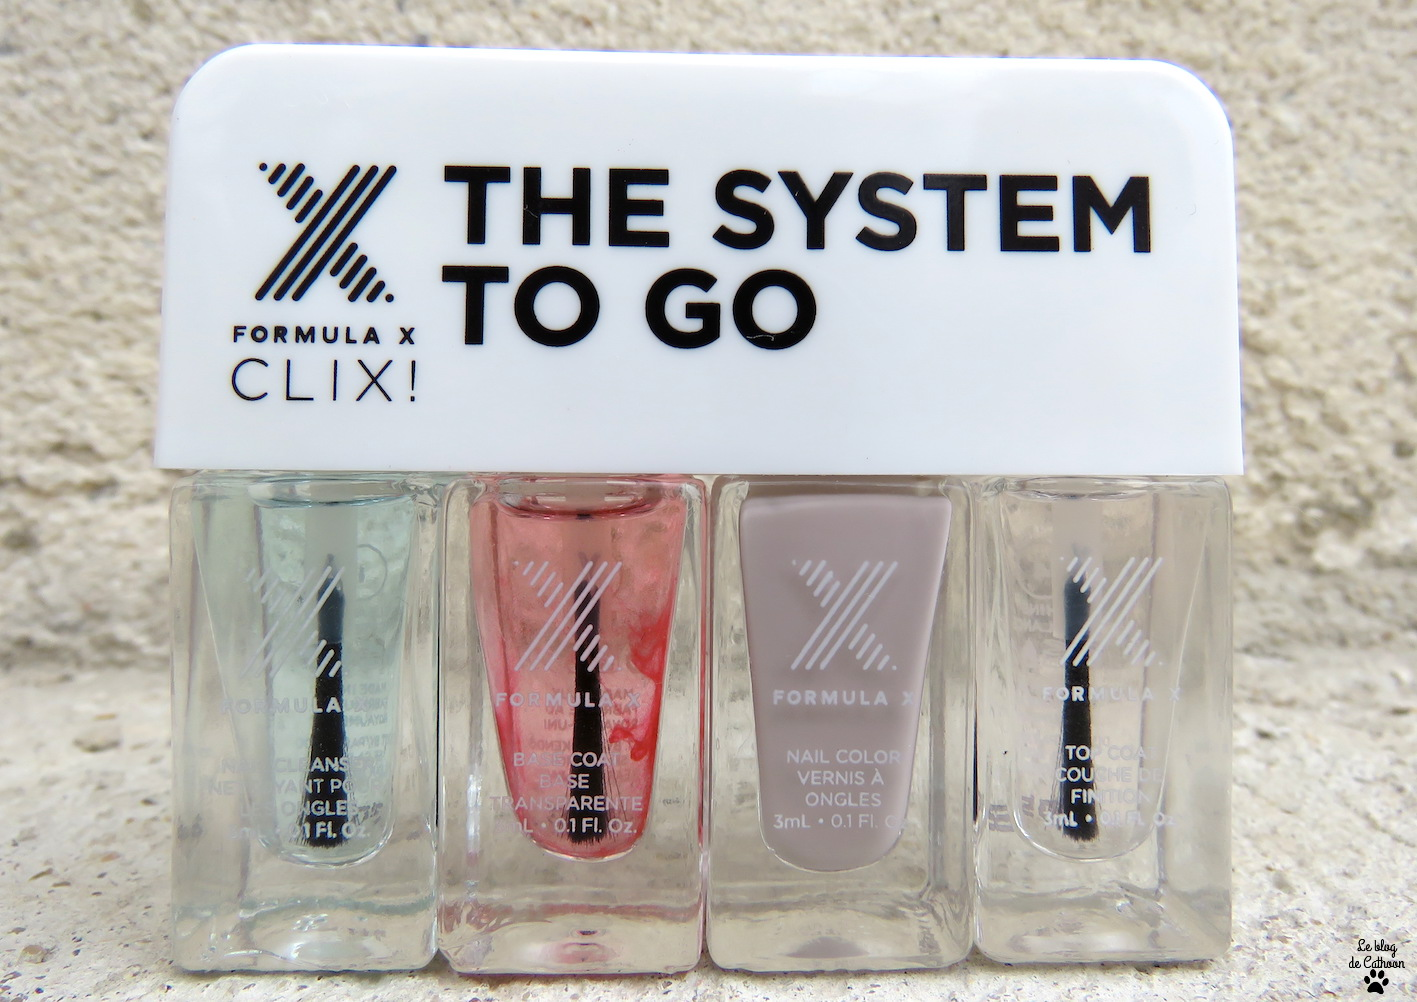 The System To Go - CLIX! - Formula X